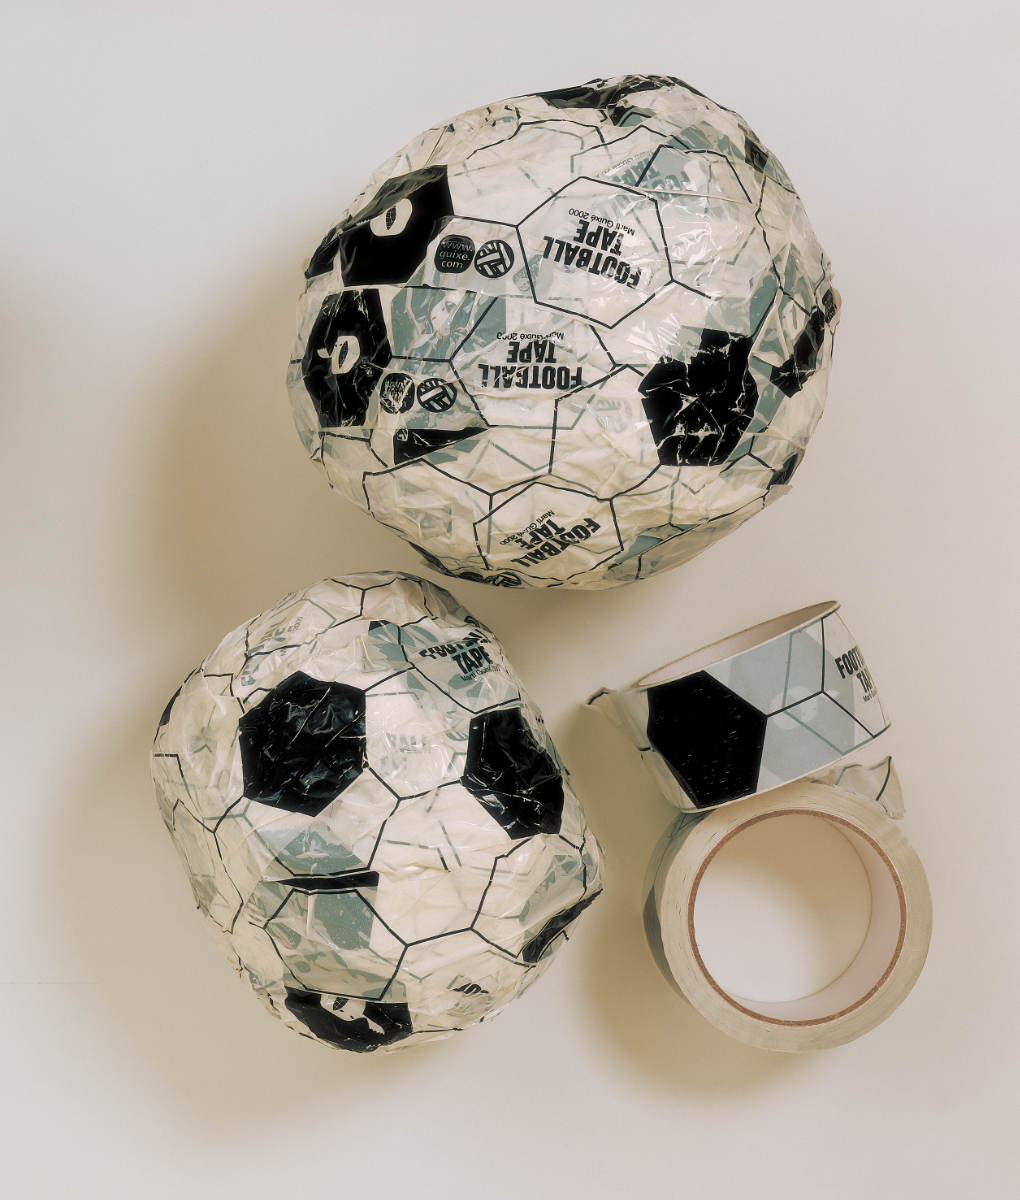 Football tape by Magis, 2004